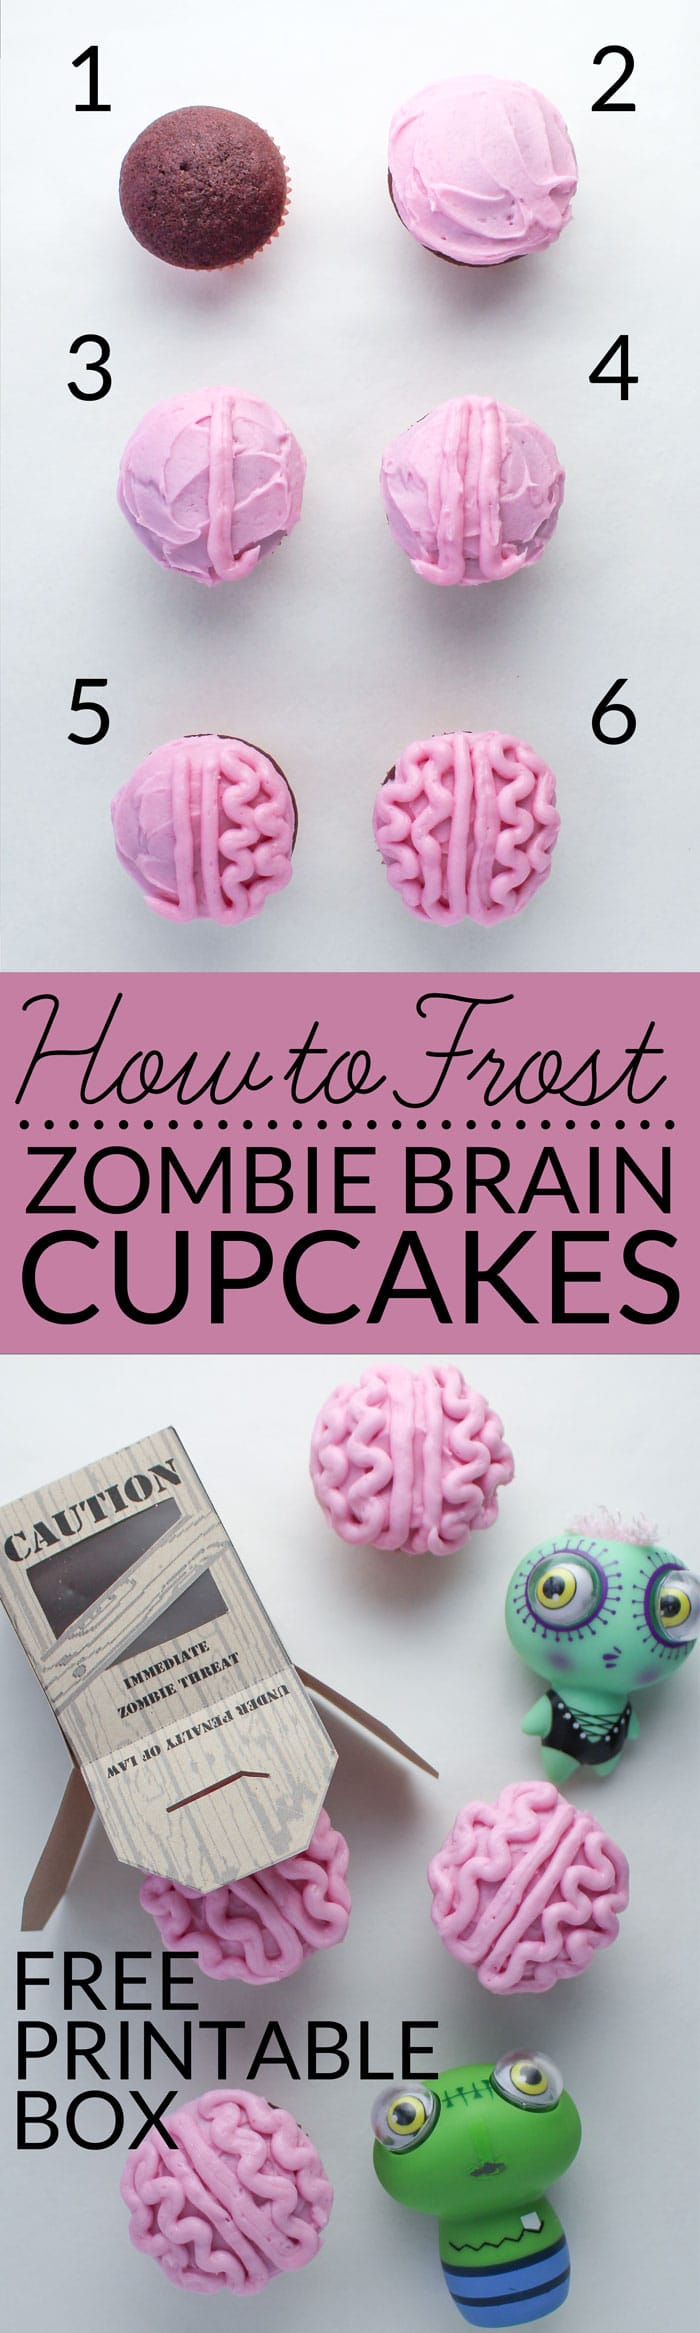 AllNatural Zombie Brain CupcakesAllNatural AllNatural Zombie Brain Cupcakes ellie nachtrab xellienx holiday Learn how to frost brain cupcakes with this easy tutorial You...